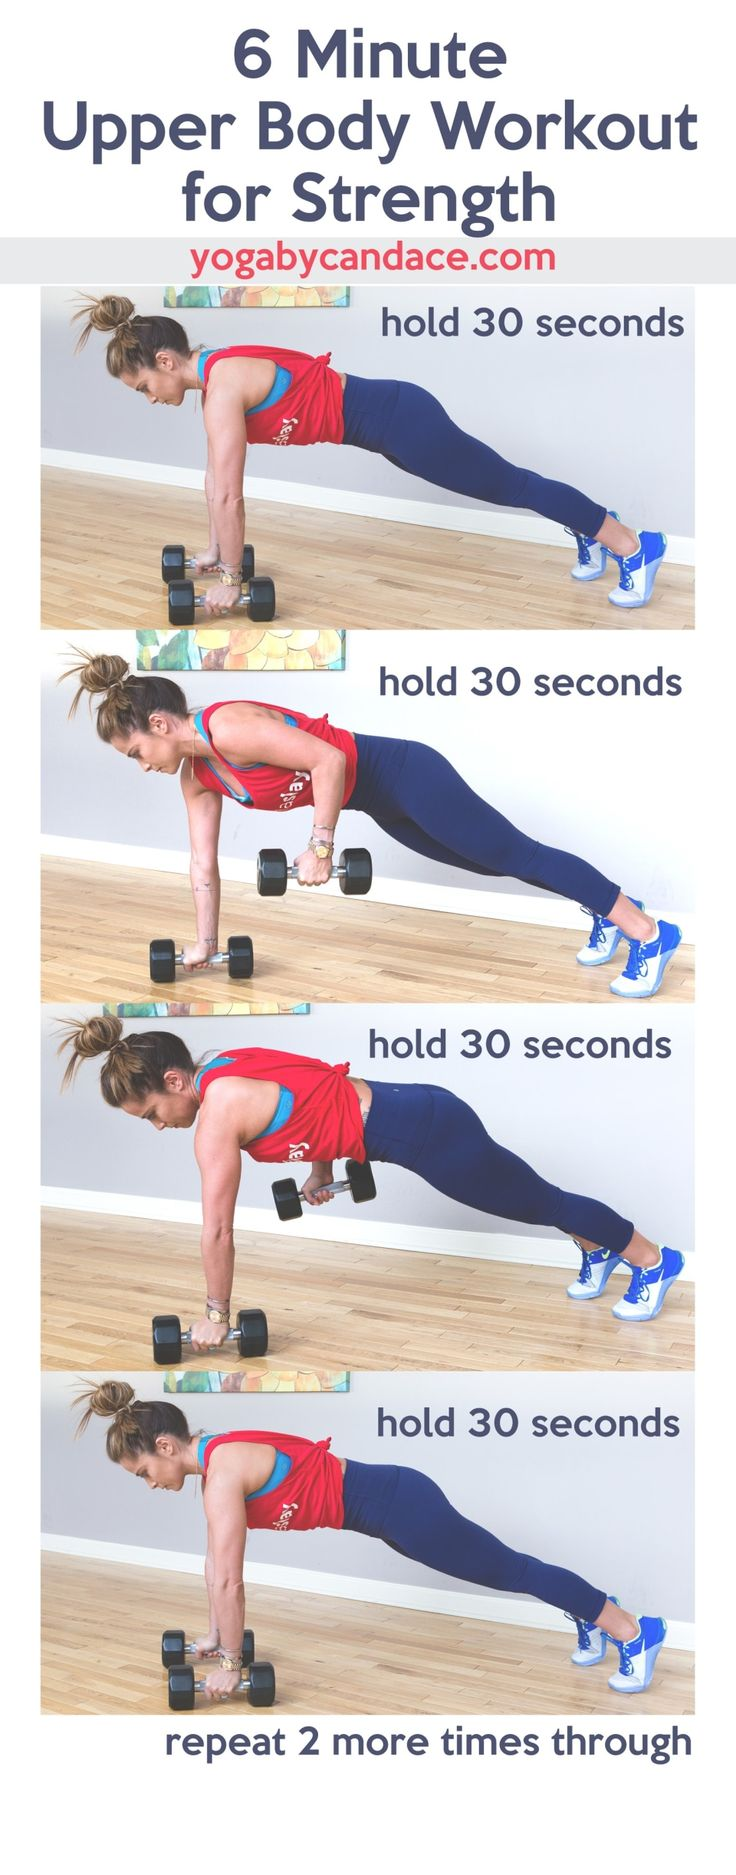 6 Minute Upper Body Workout for Strength and Qalo Functional Rings for the Gym — YOGABYCANDACE